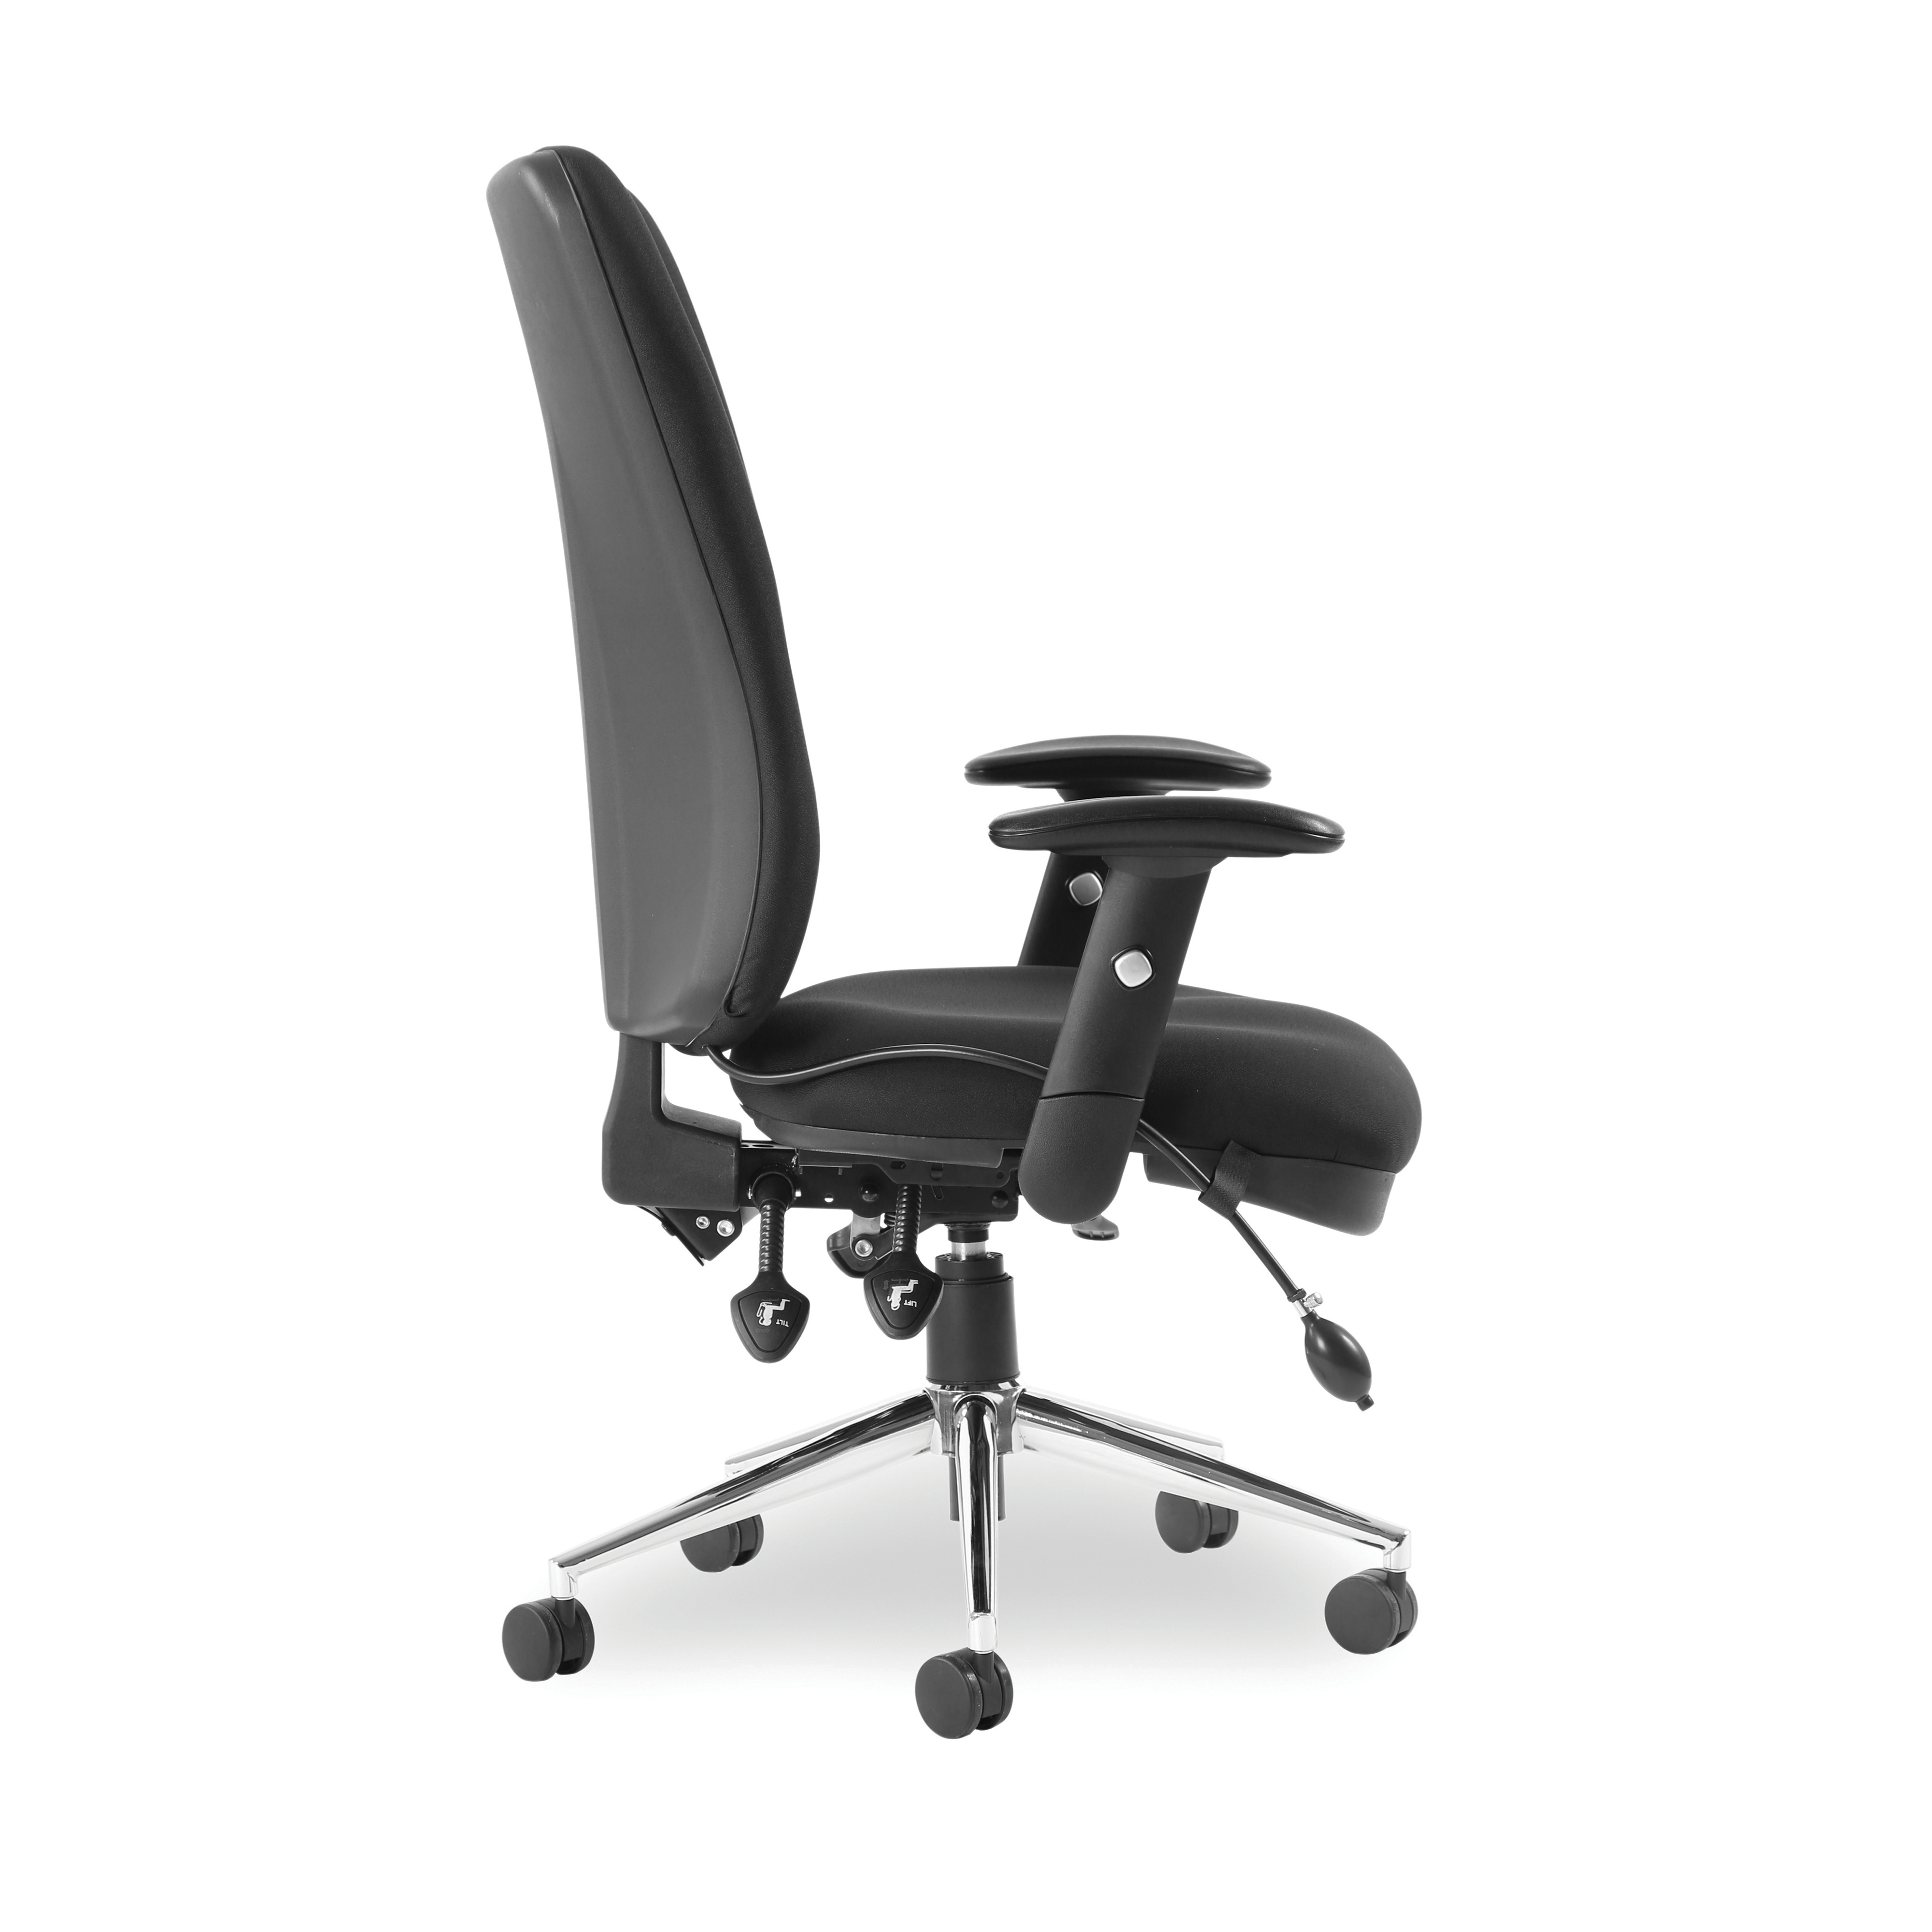 Sonix Support Chiro High Back Chair Black 510x480-540x500-600mm Ref OP000006